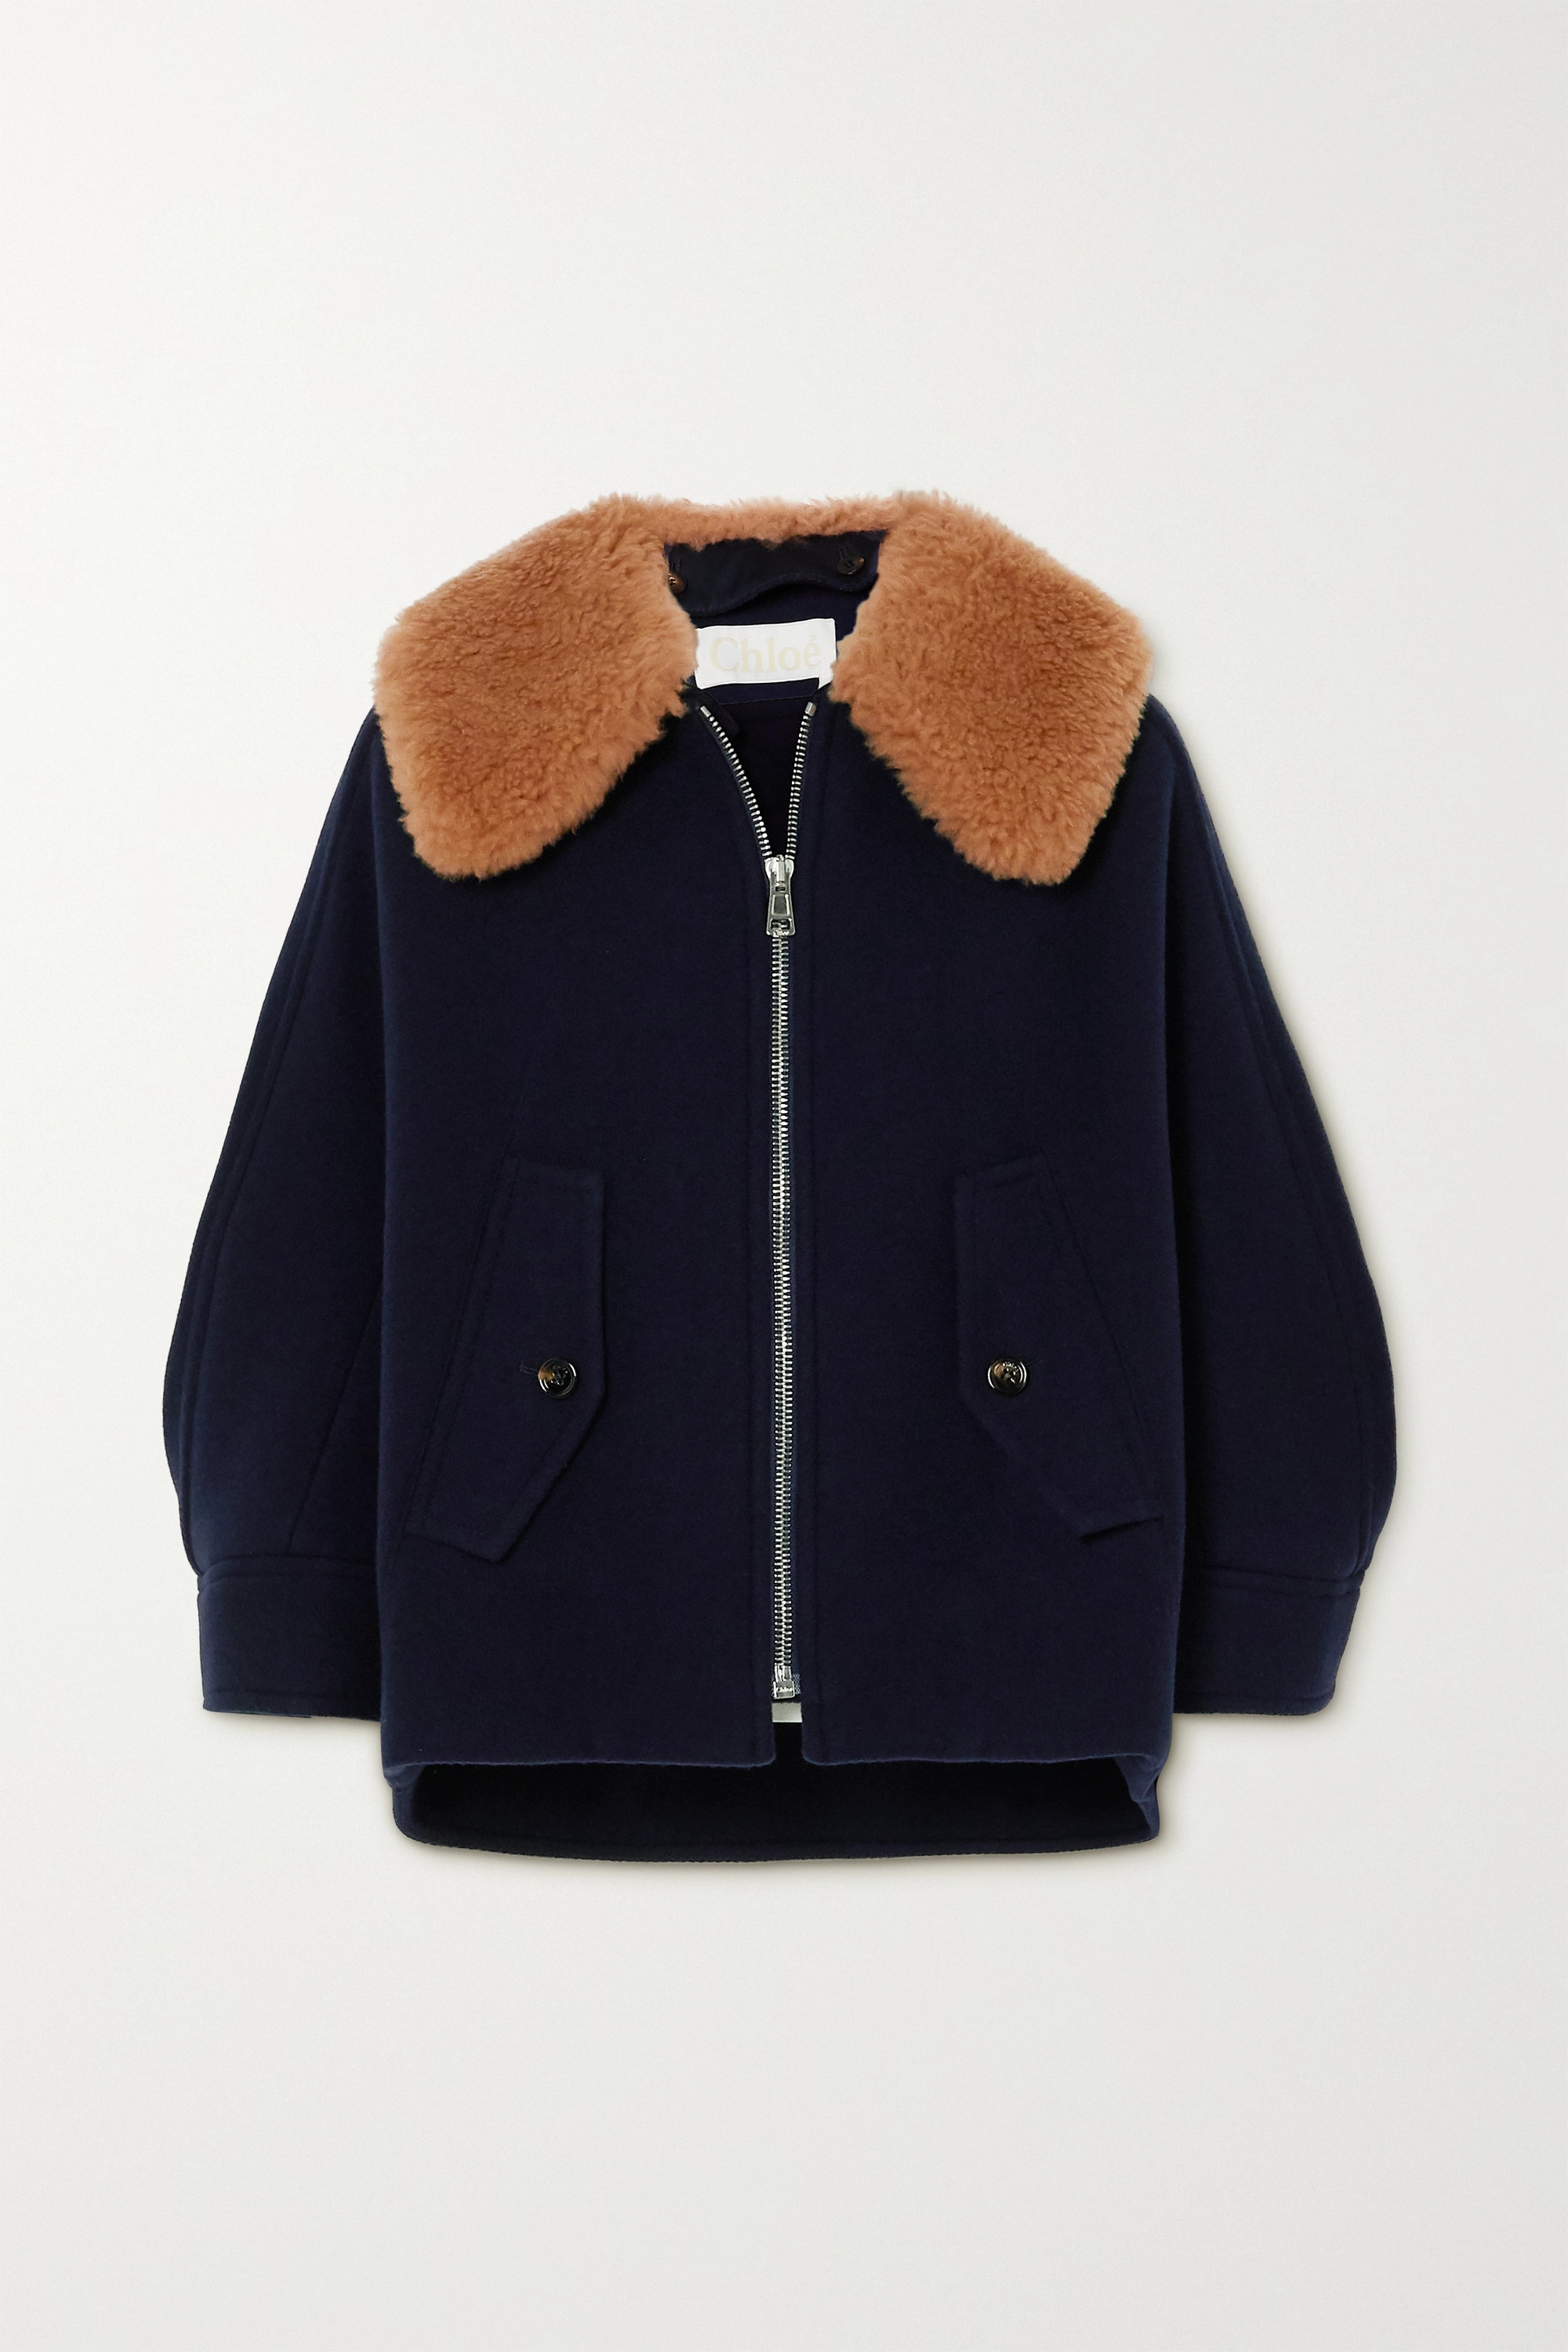 Chloé Convertible shearling-trimmed wool-blend jacket